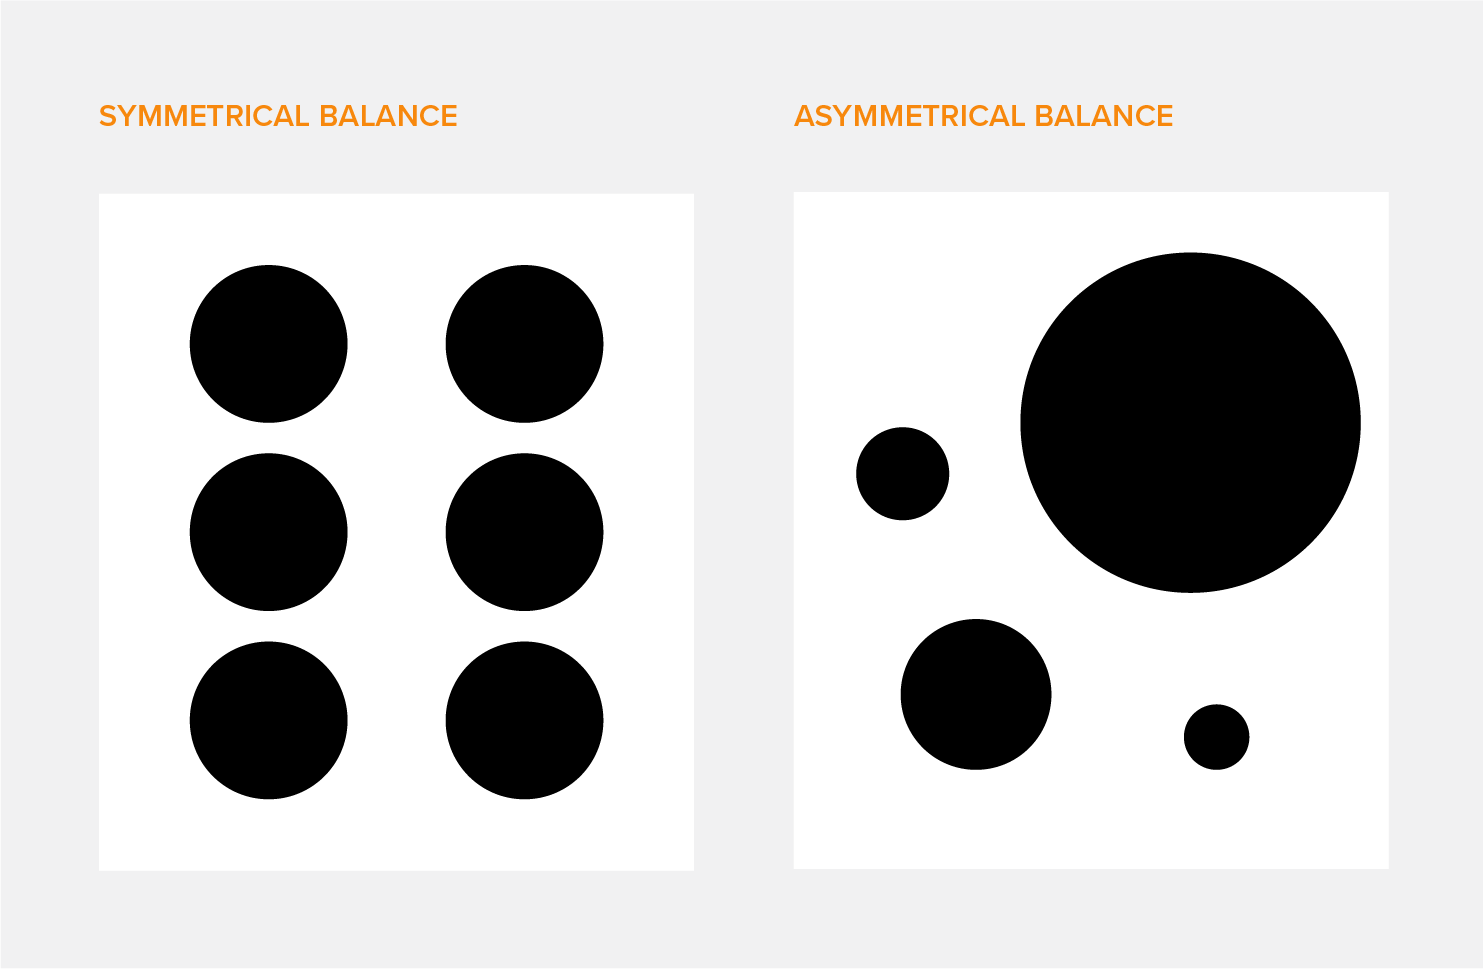 Examples of symmetrical balance and asymmetrical balance